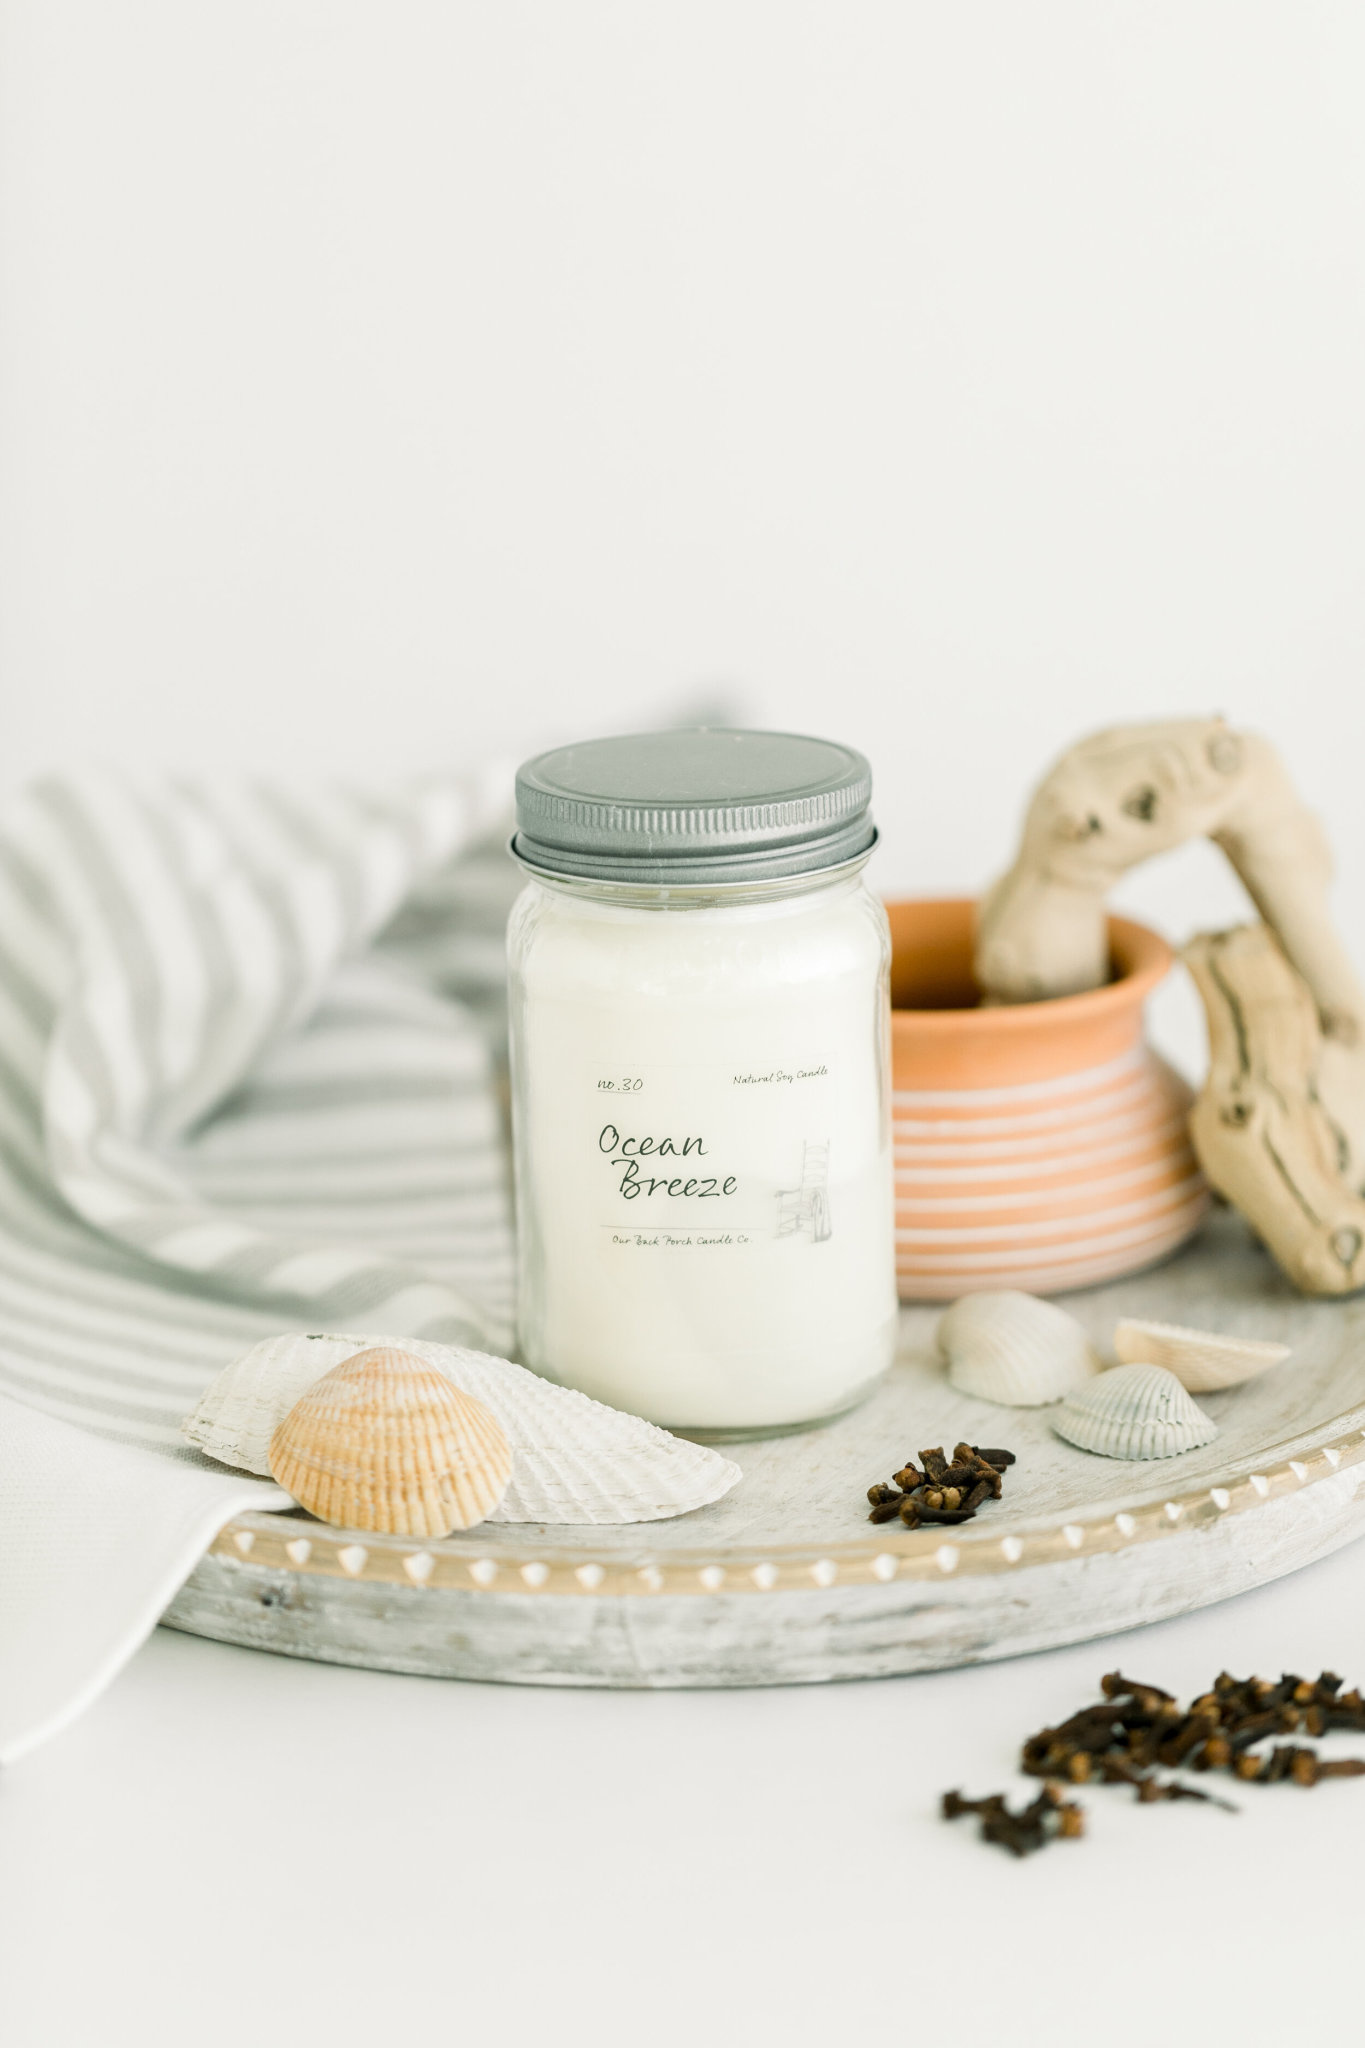 Ocean Breeze 16oz Candle